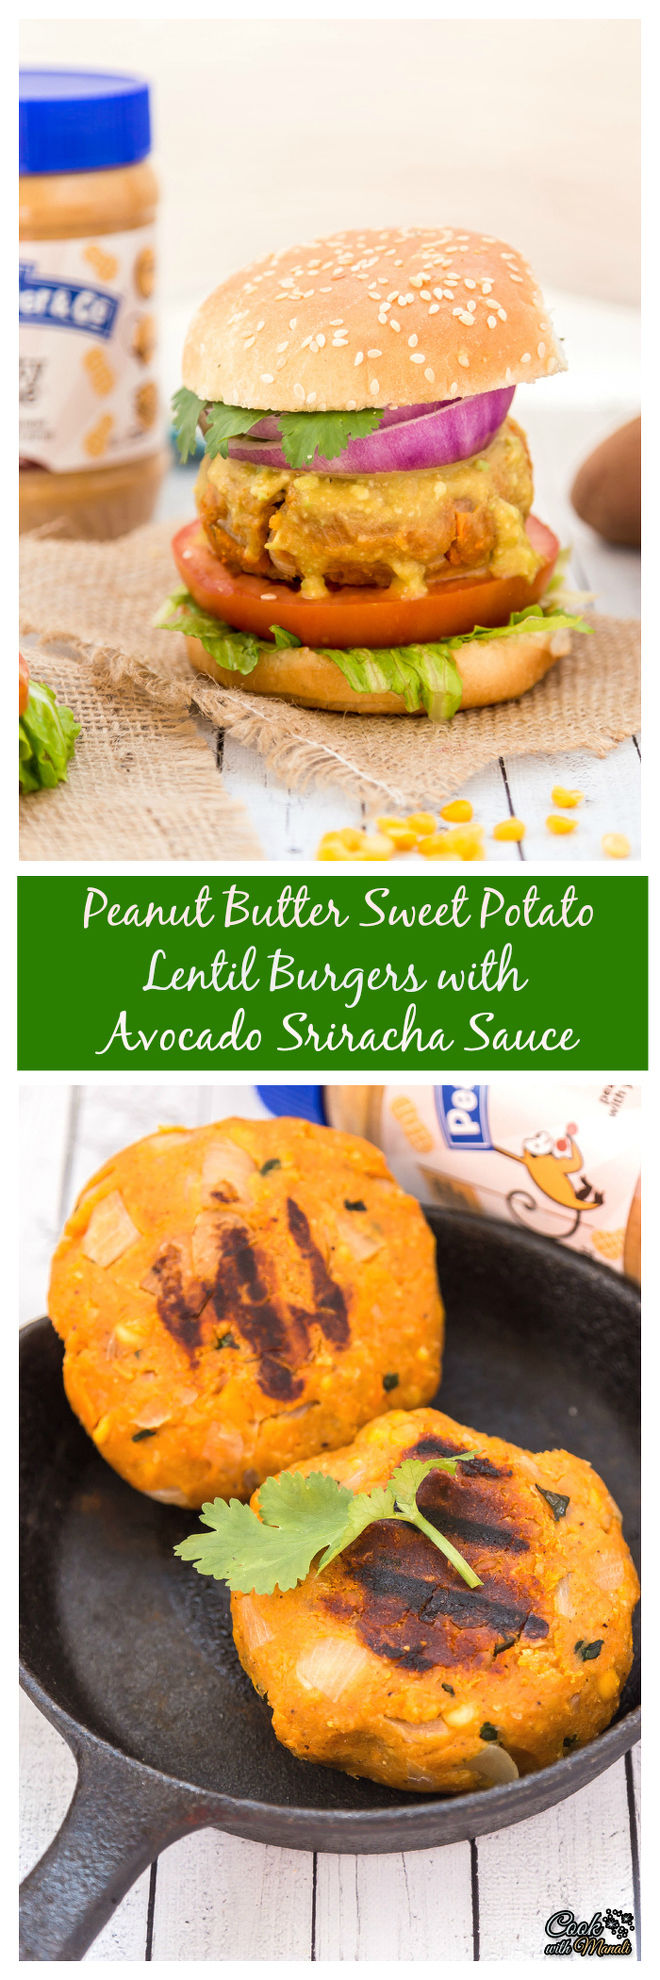 Peanut Butter Sweet Potato Lentil Burgers with Sriracha Sauce collage-nocwm